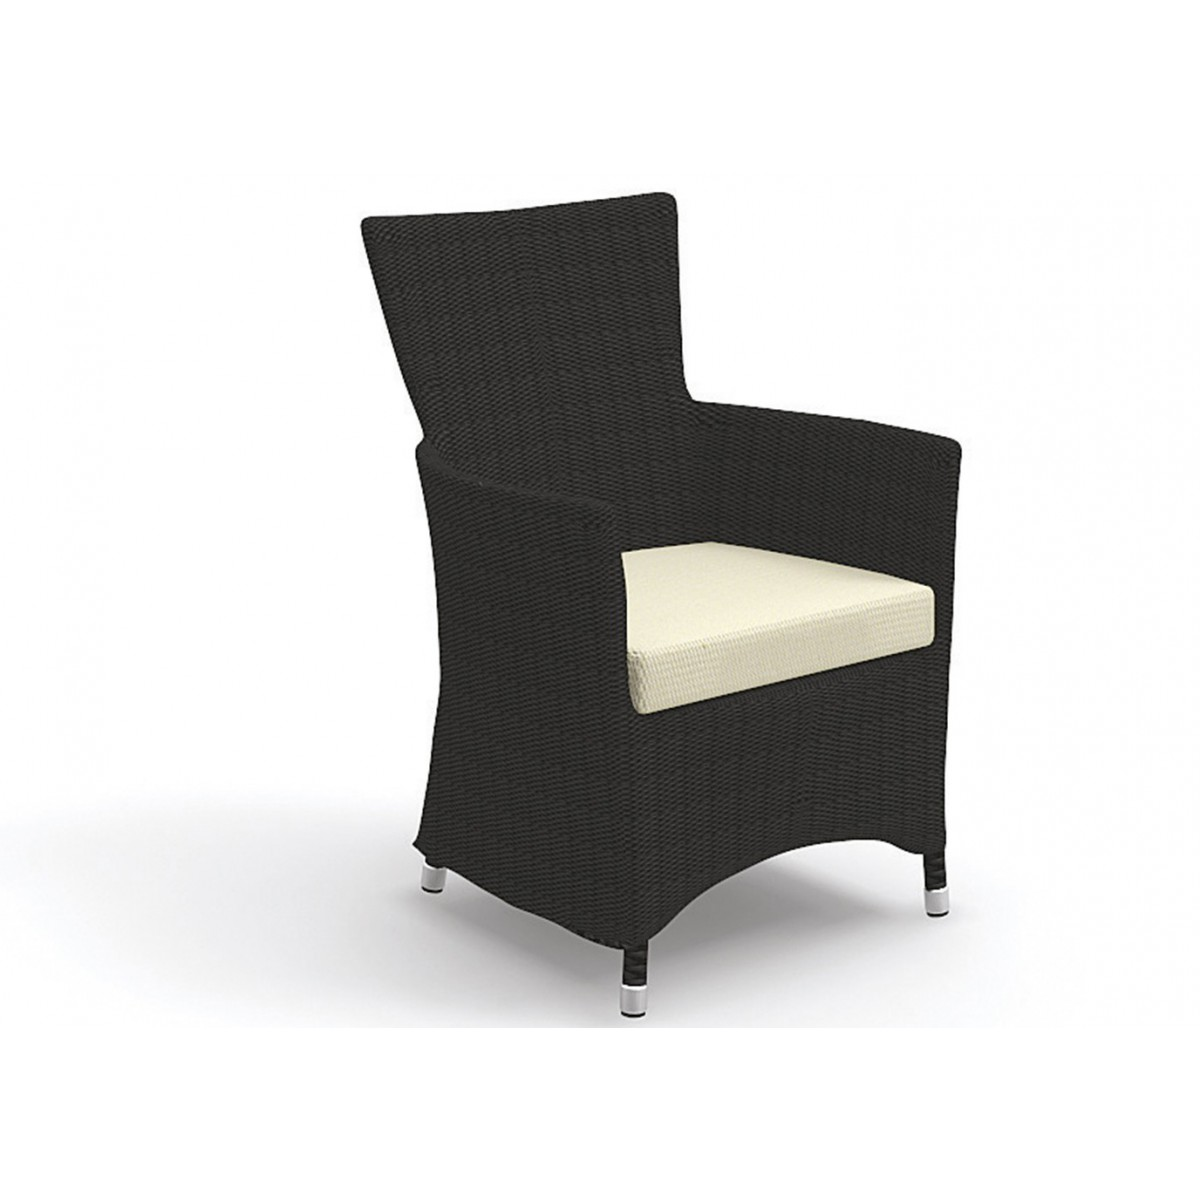 fauteuil de jardin en wicker brun ou blanc miami by talenti. Black Bedroom Furniture Sets. Home Design Ideas